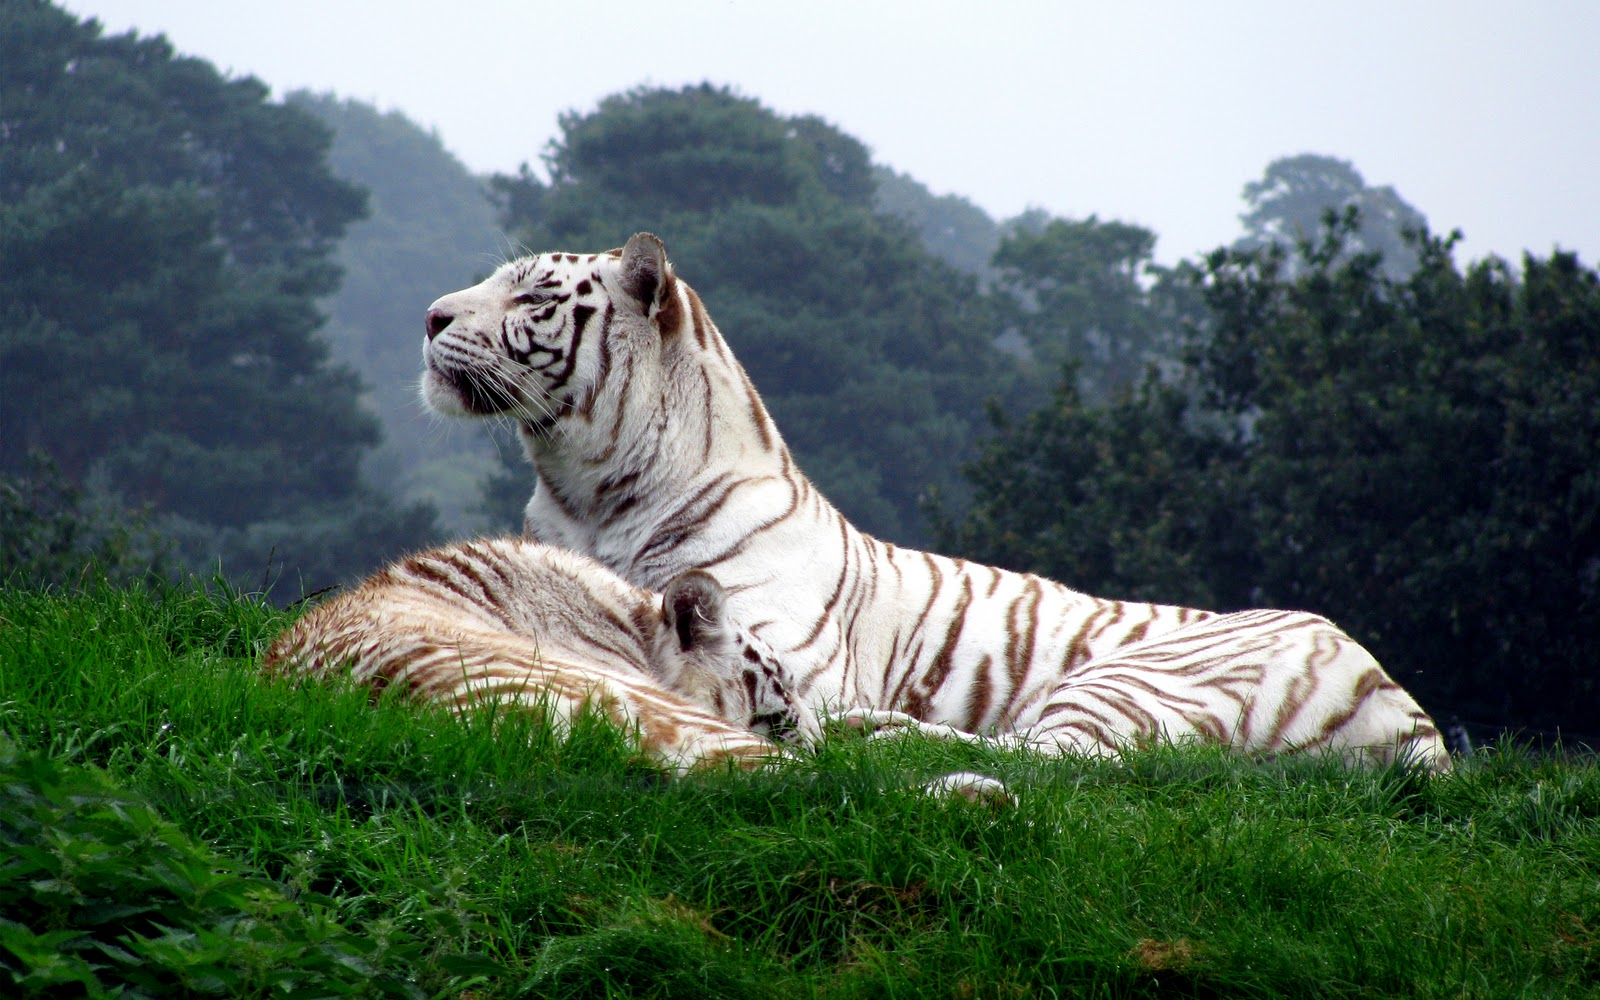 TIGER WALLPAPERS: Mountain White Tiger Wallpapers